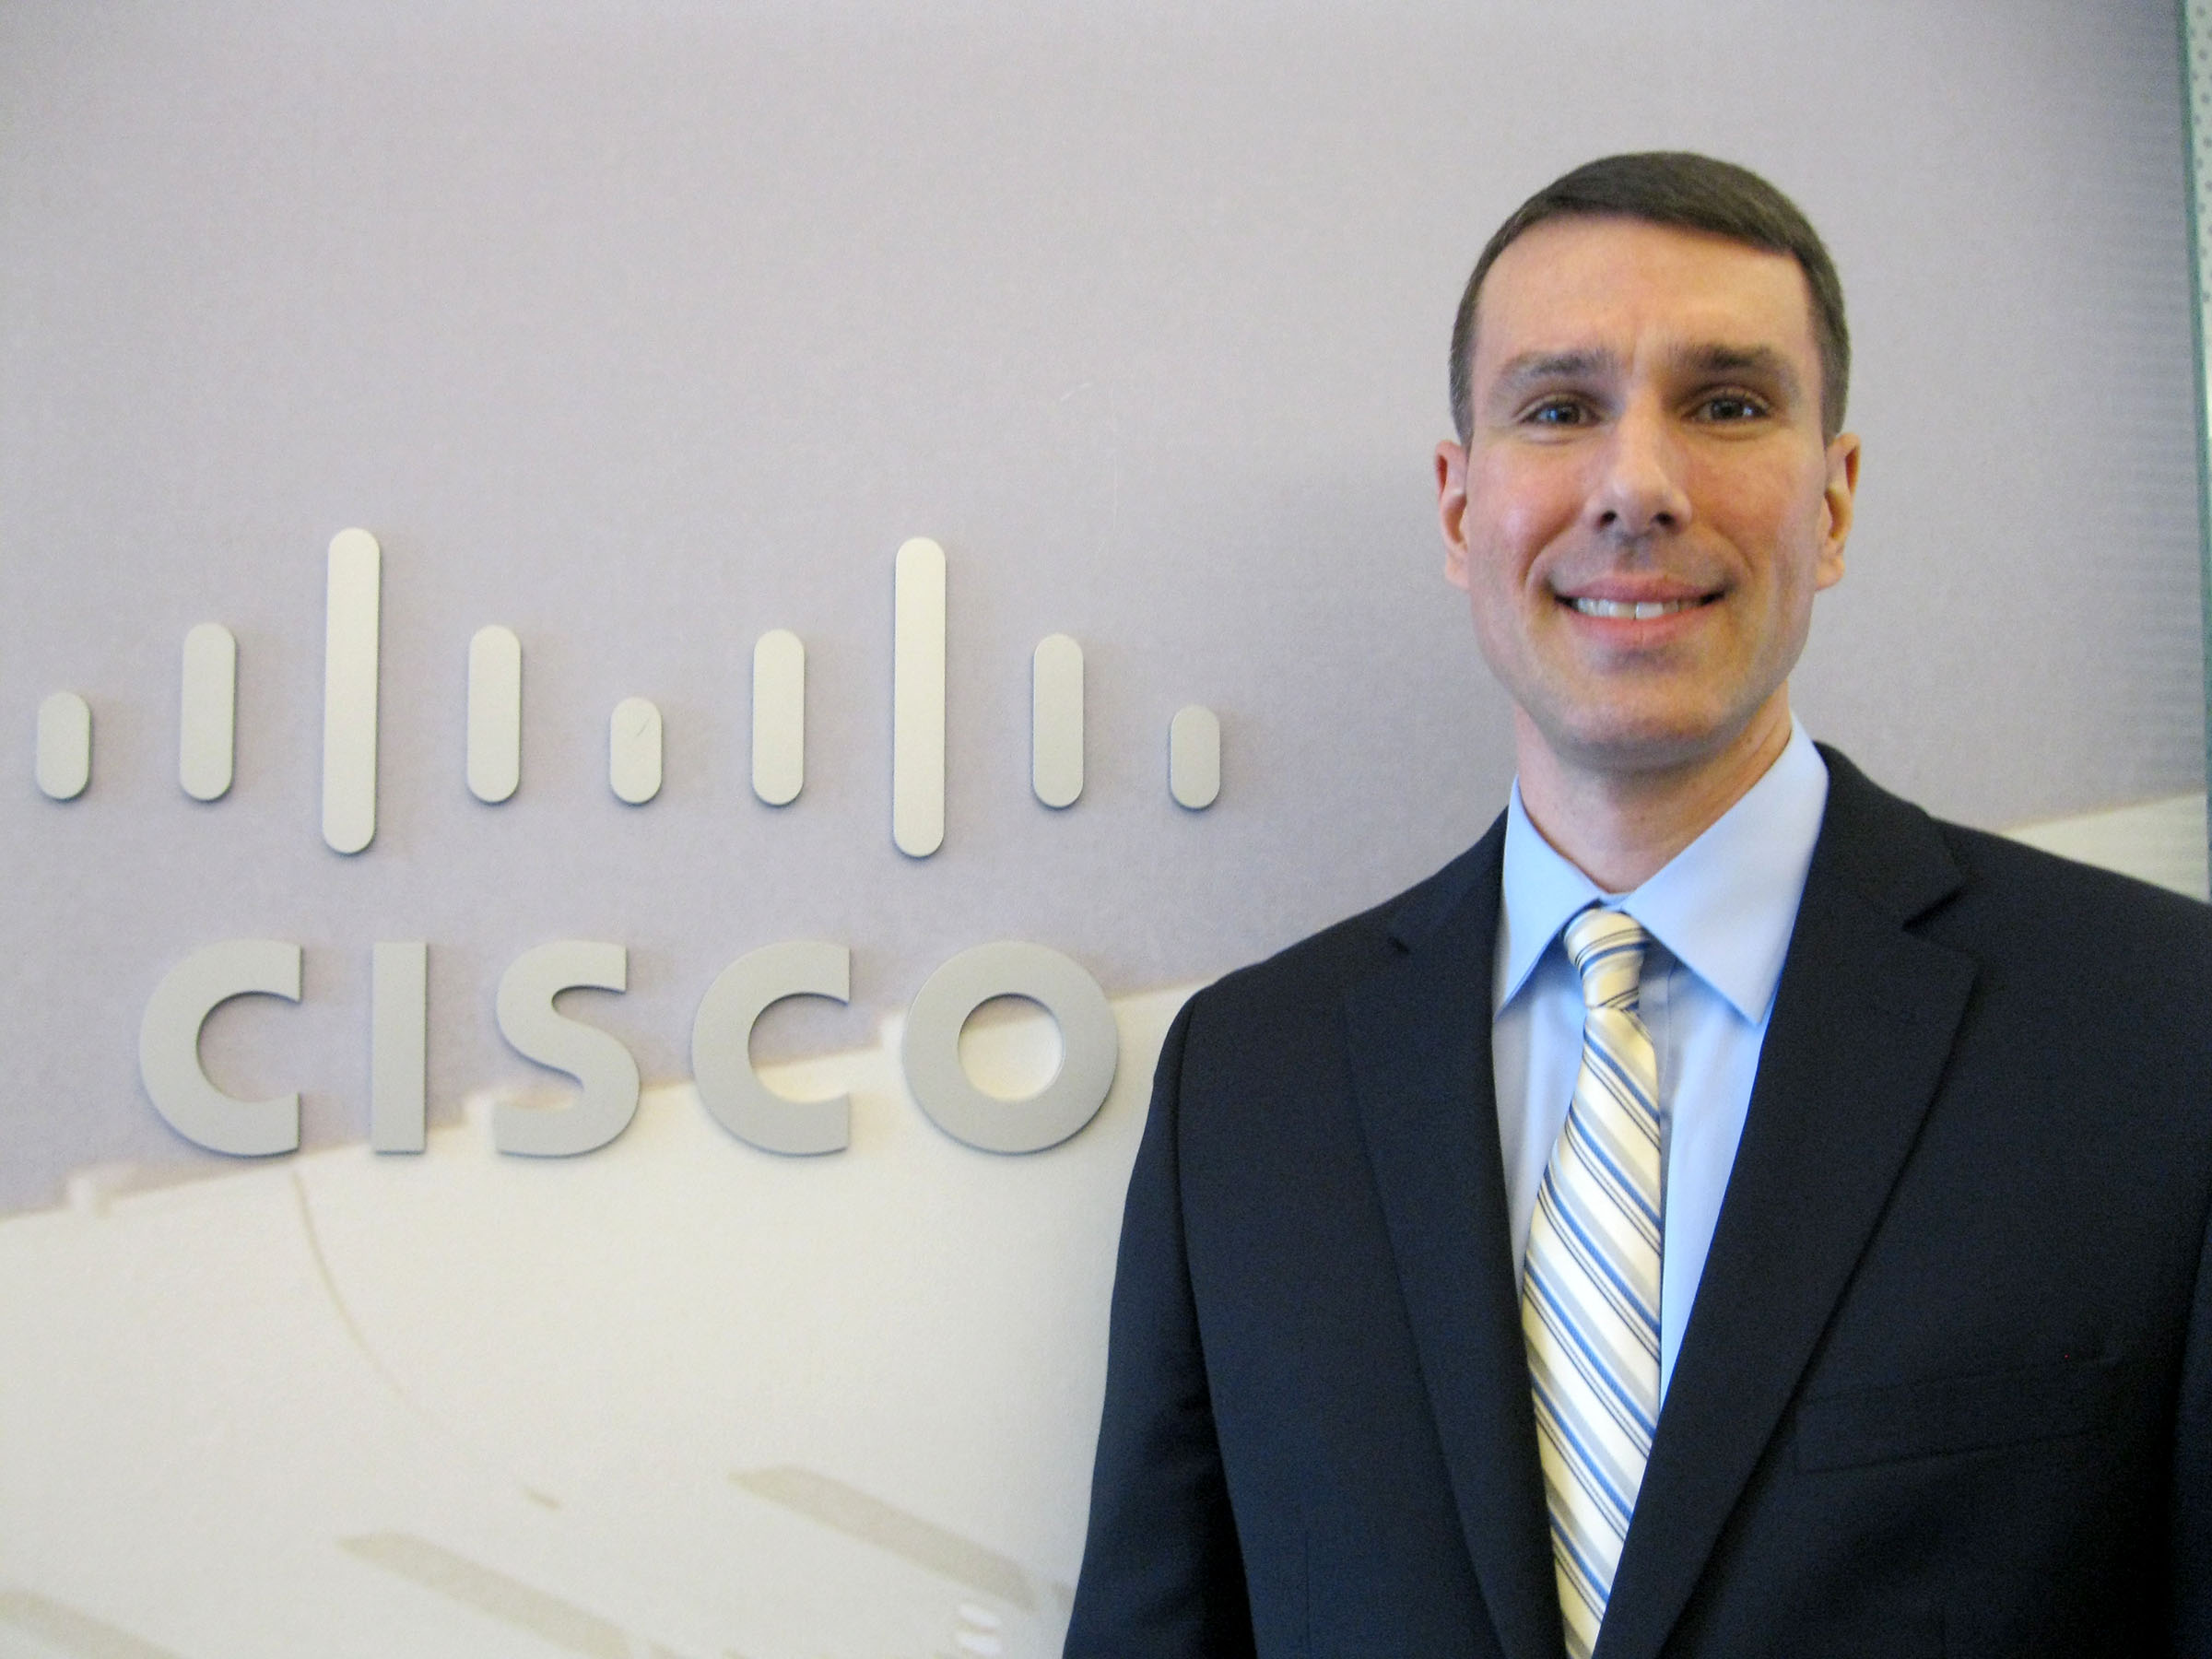 Henderson last year working with Cisco Systems